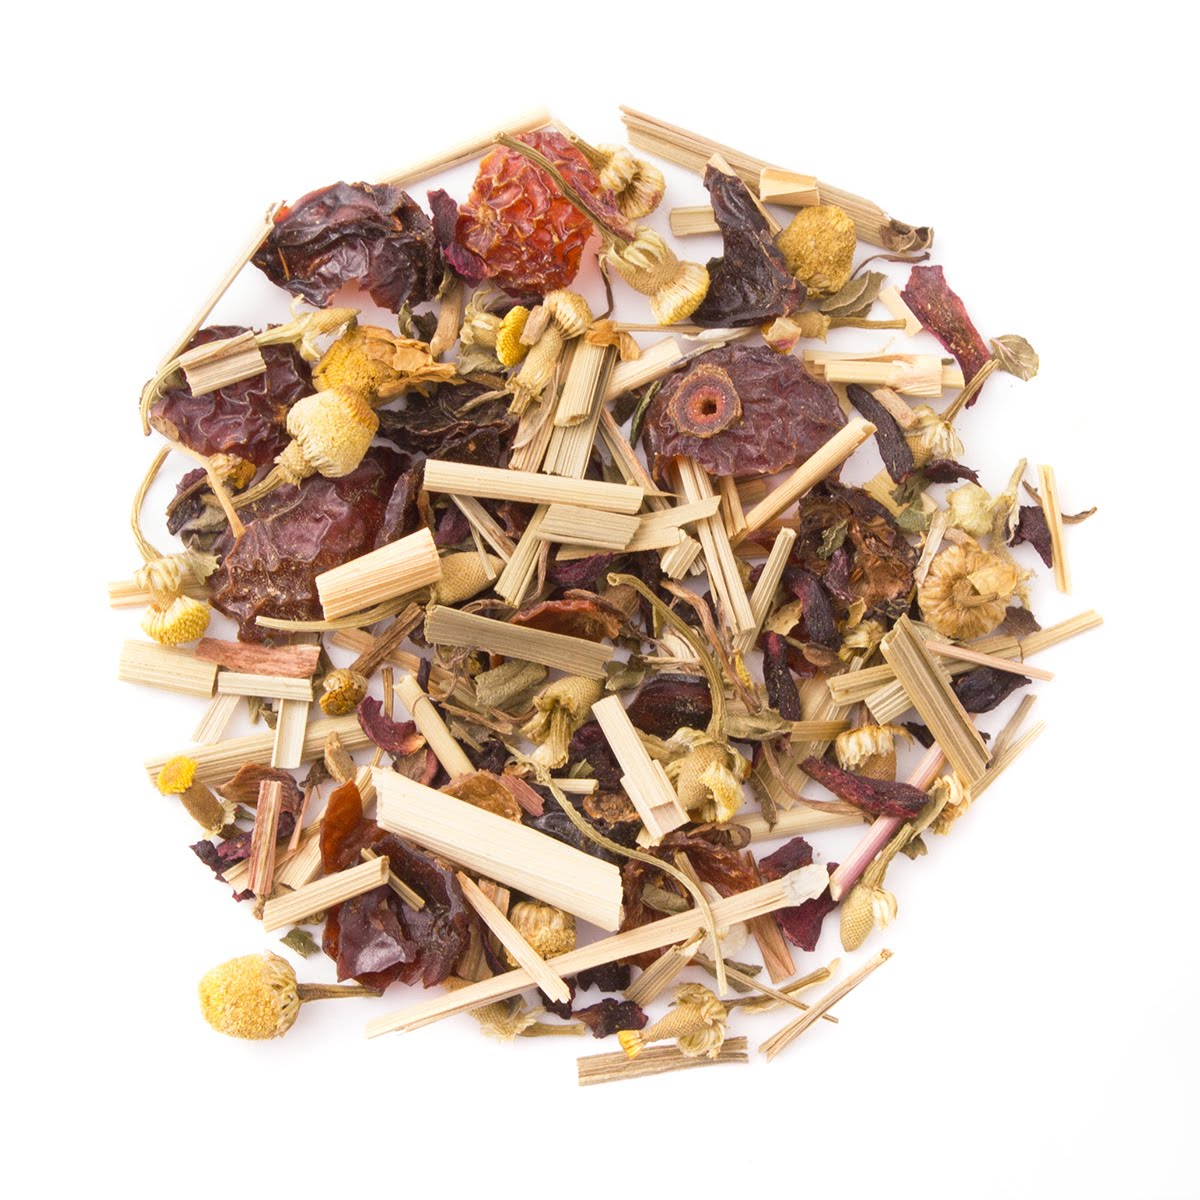 Sleep & Calming Teas - Sleepytime Teas - Relaxing Teas - Anxiety Tea - Heavenly Tea Leaves